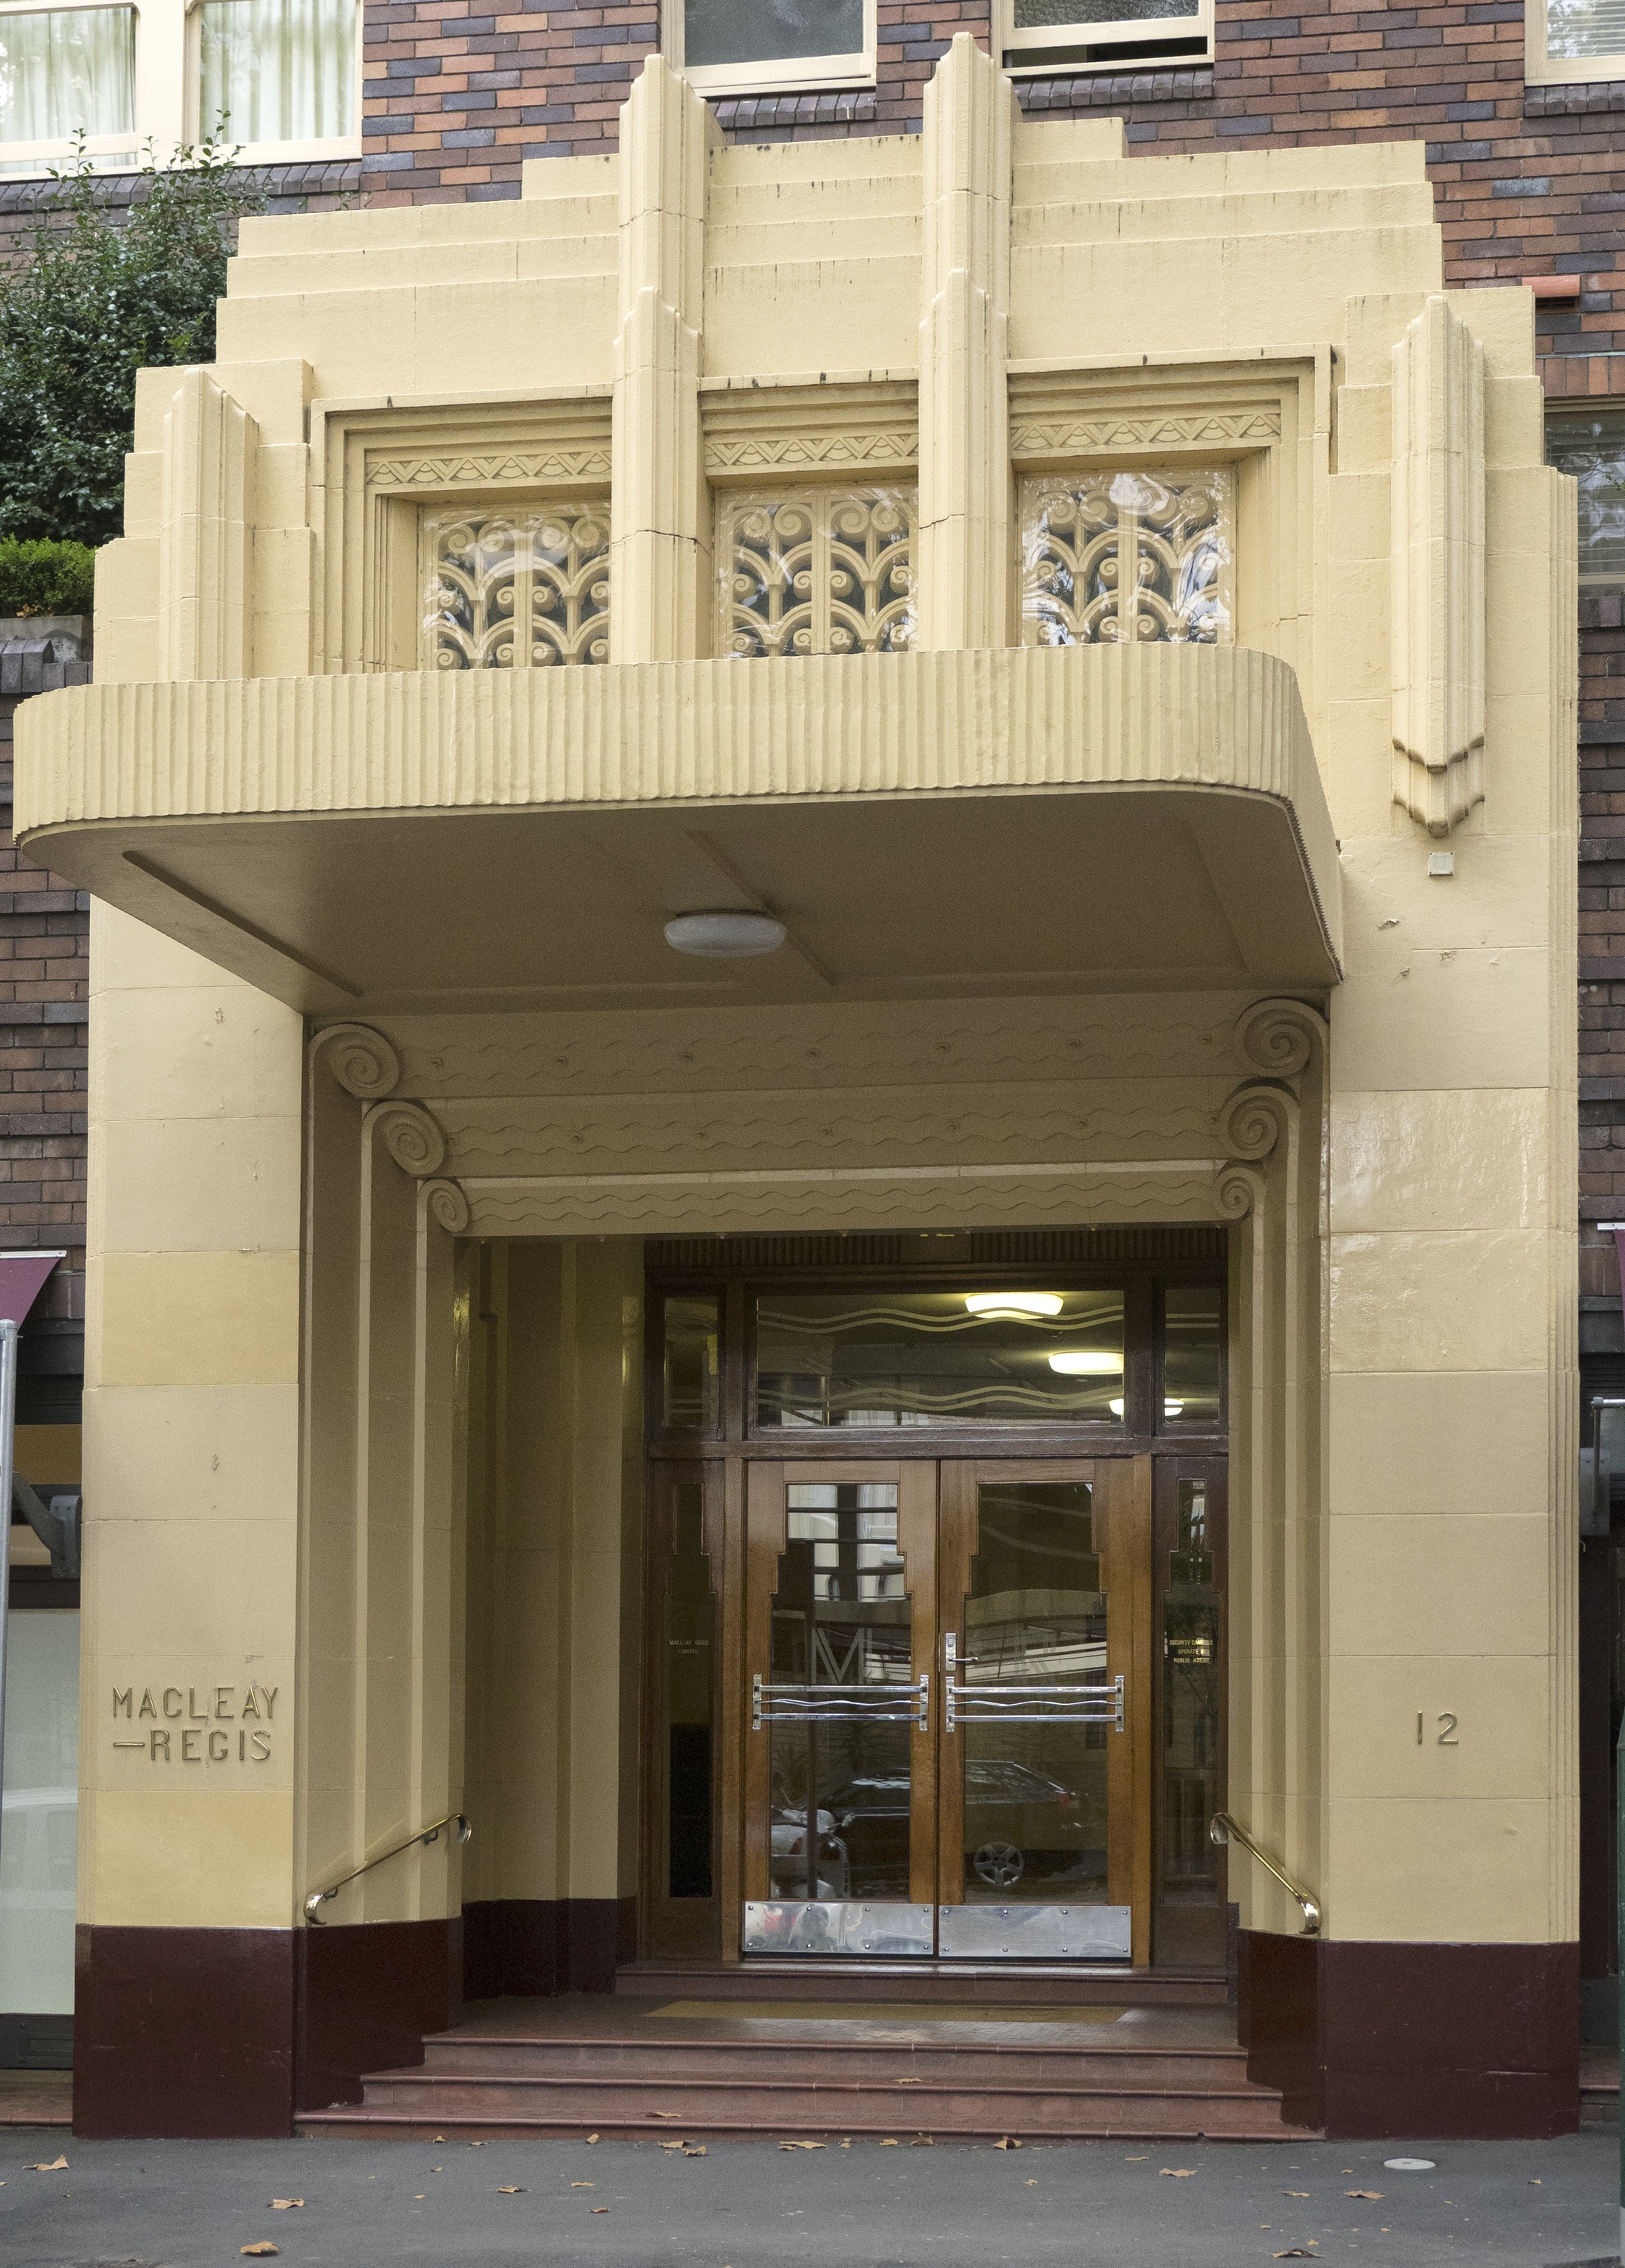 The grand entrance of the Art Deco building the Macleay Regis in Potts Point